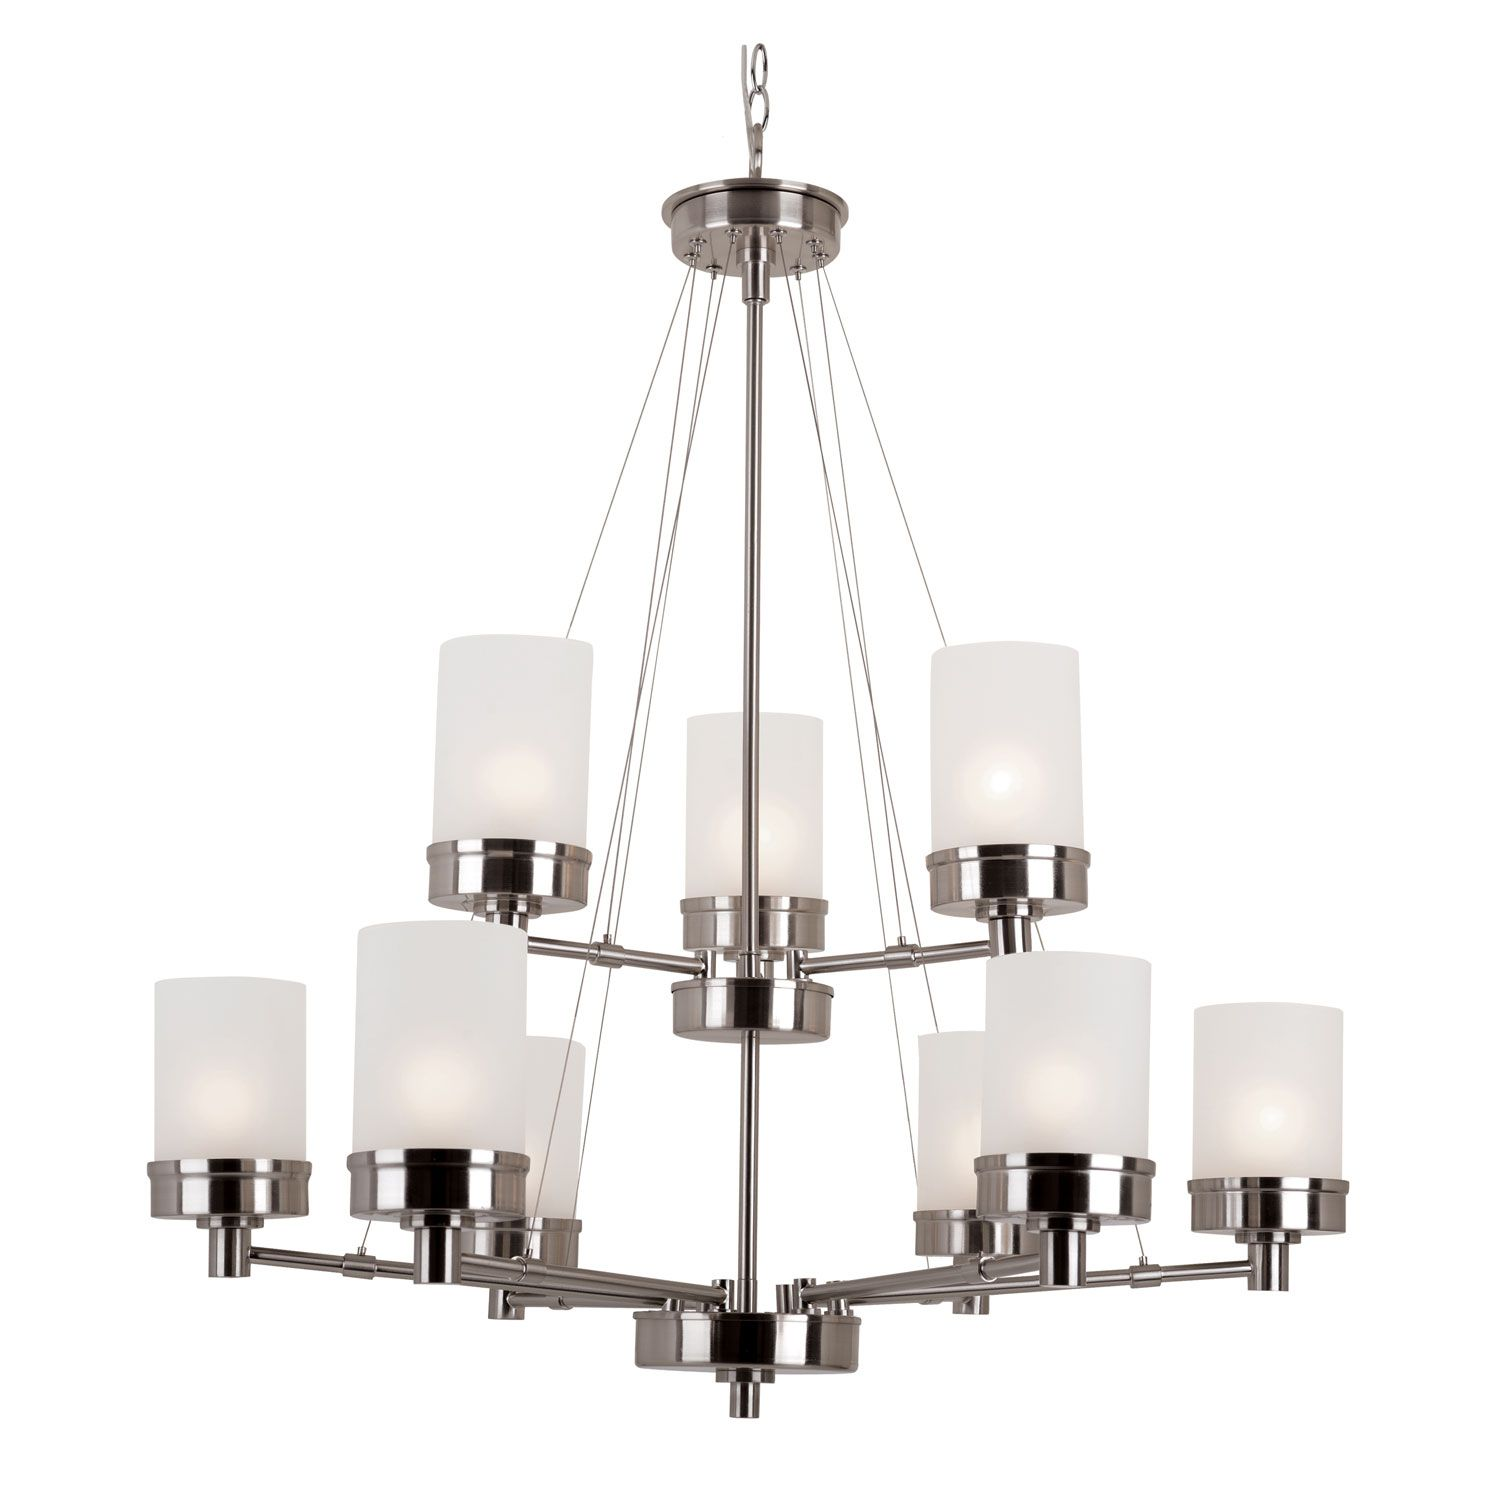 Trans Globe Lighting Brushed Nickel Urban Swag 2 Tier Chandelier With White Frosted Glass On SALE